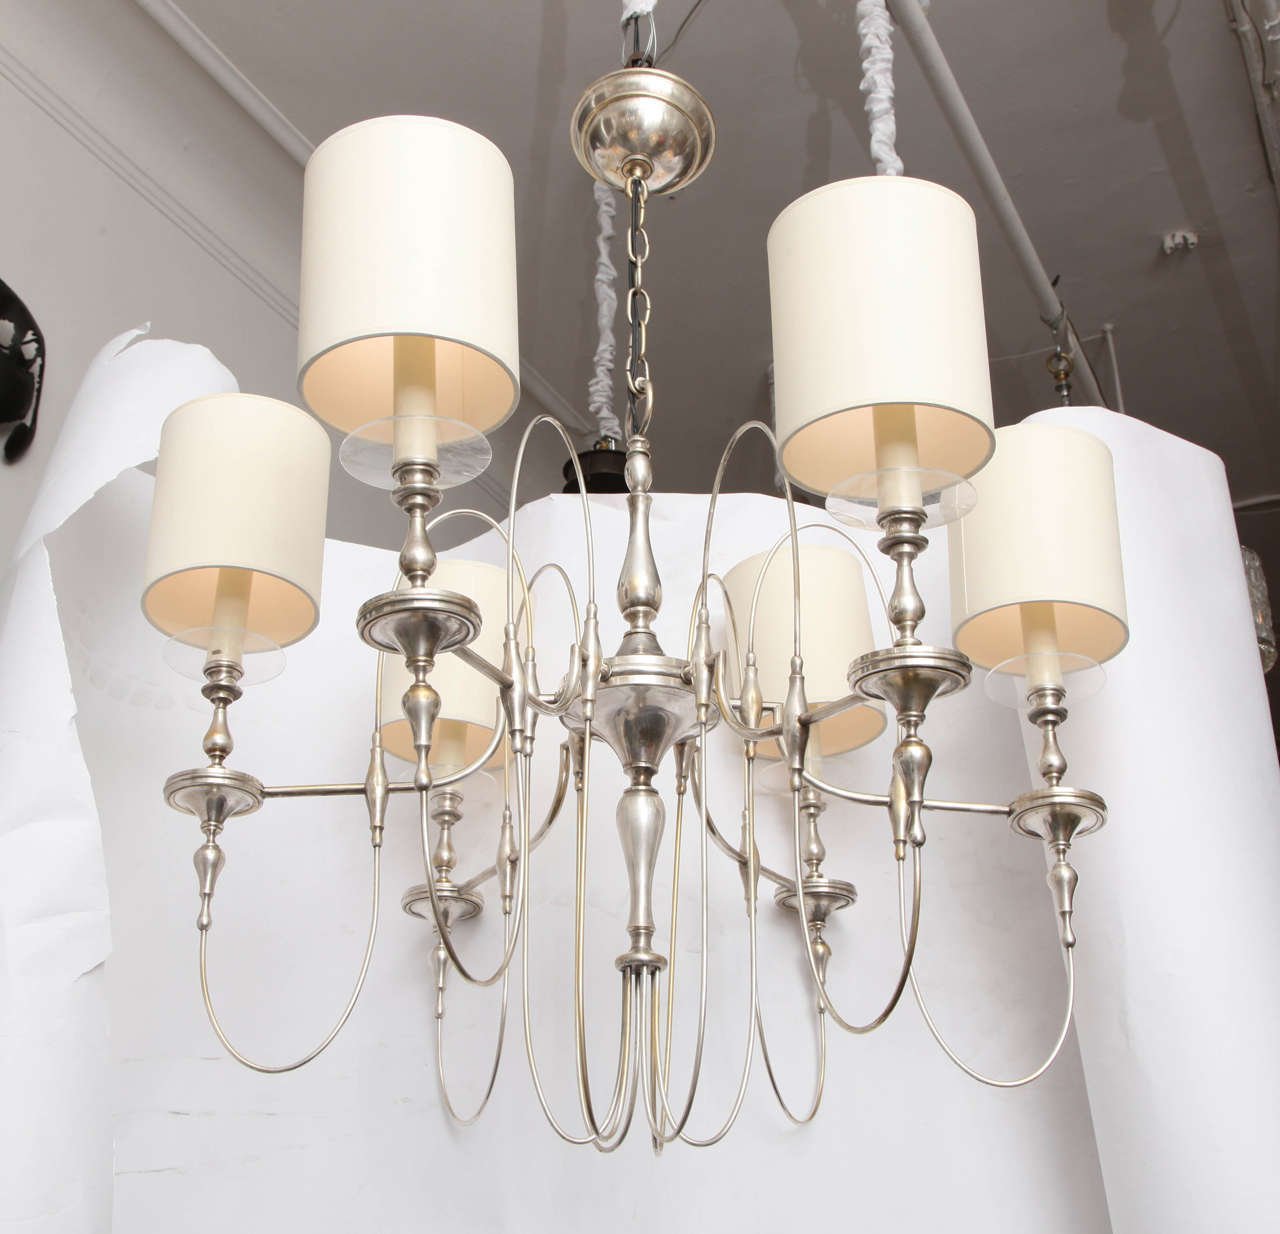 A 1940s art moderne candelabra chandelier, in silver-plate metal with six baluster motif arms, featuring elaborately scrolling stems. Shades not included